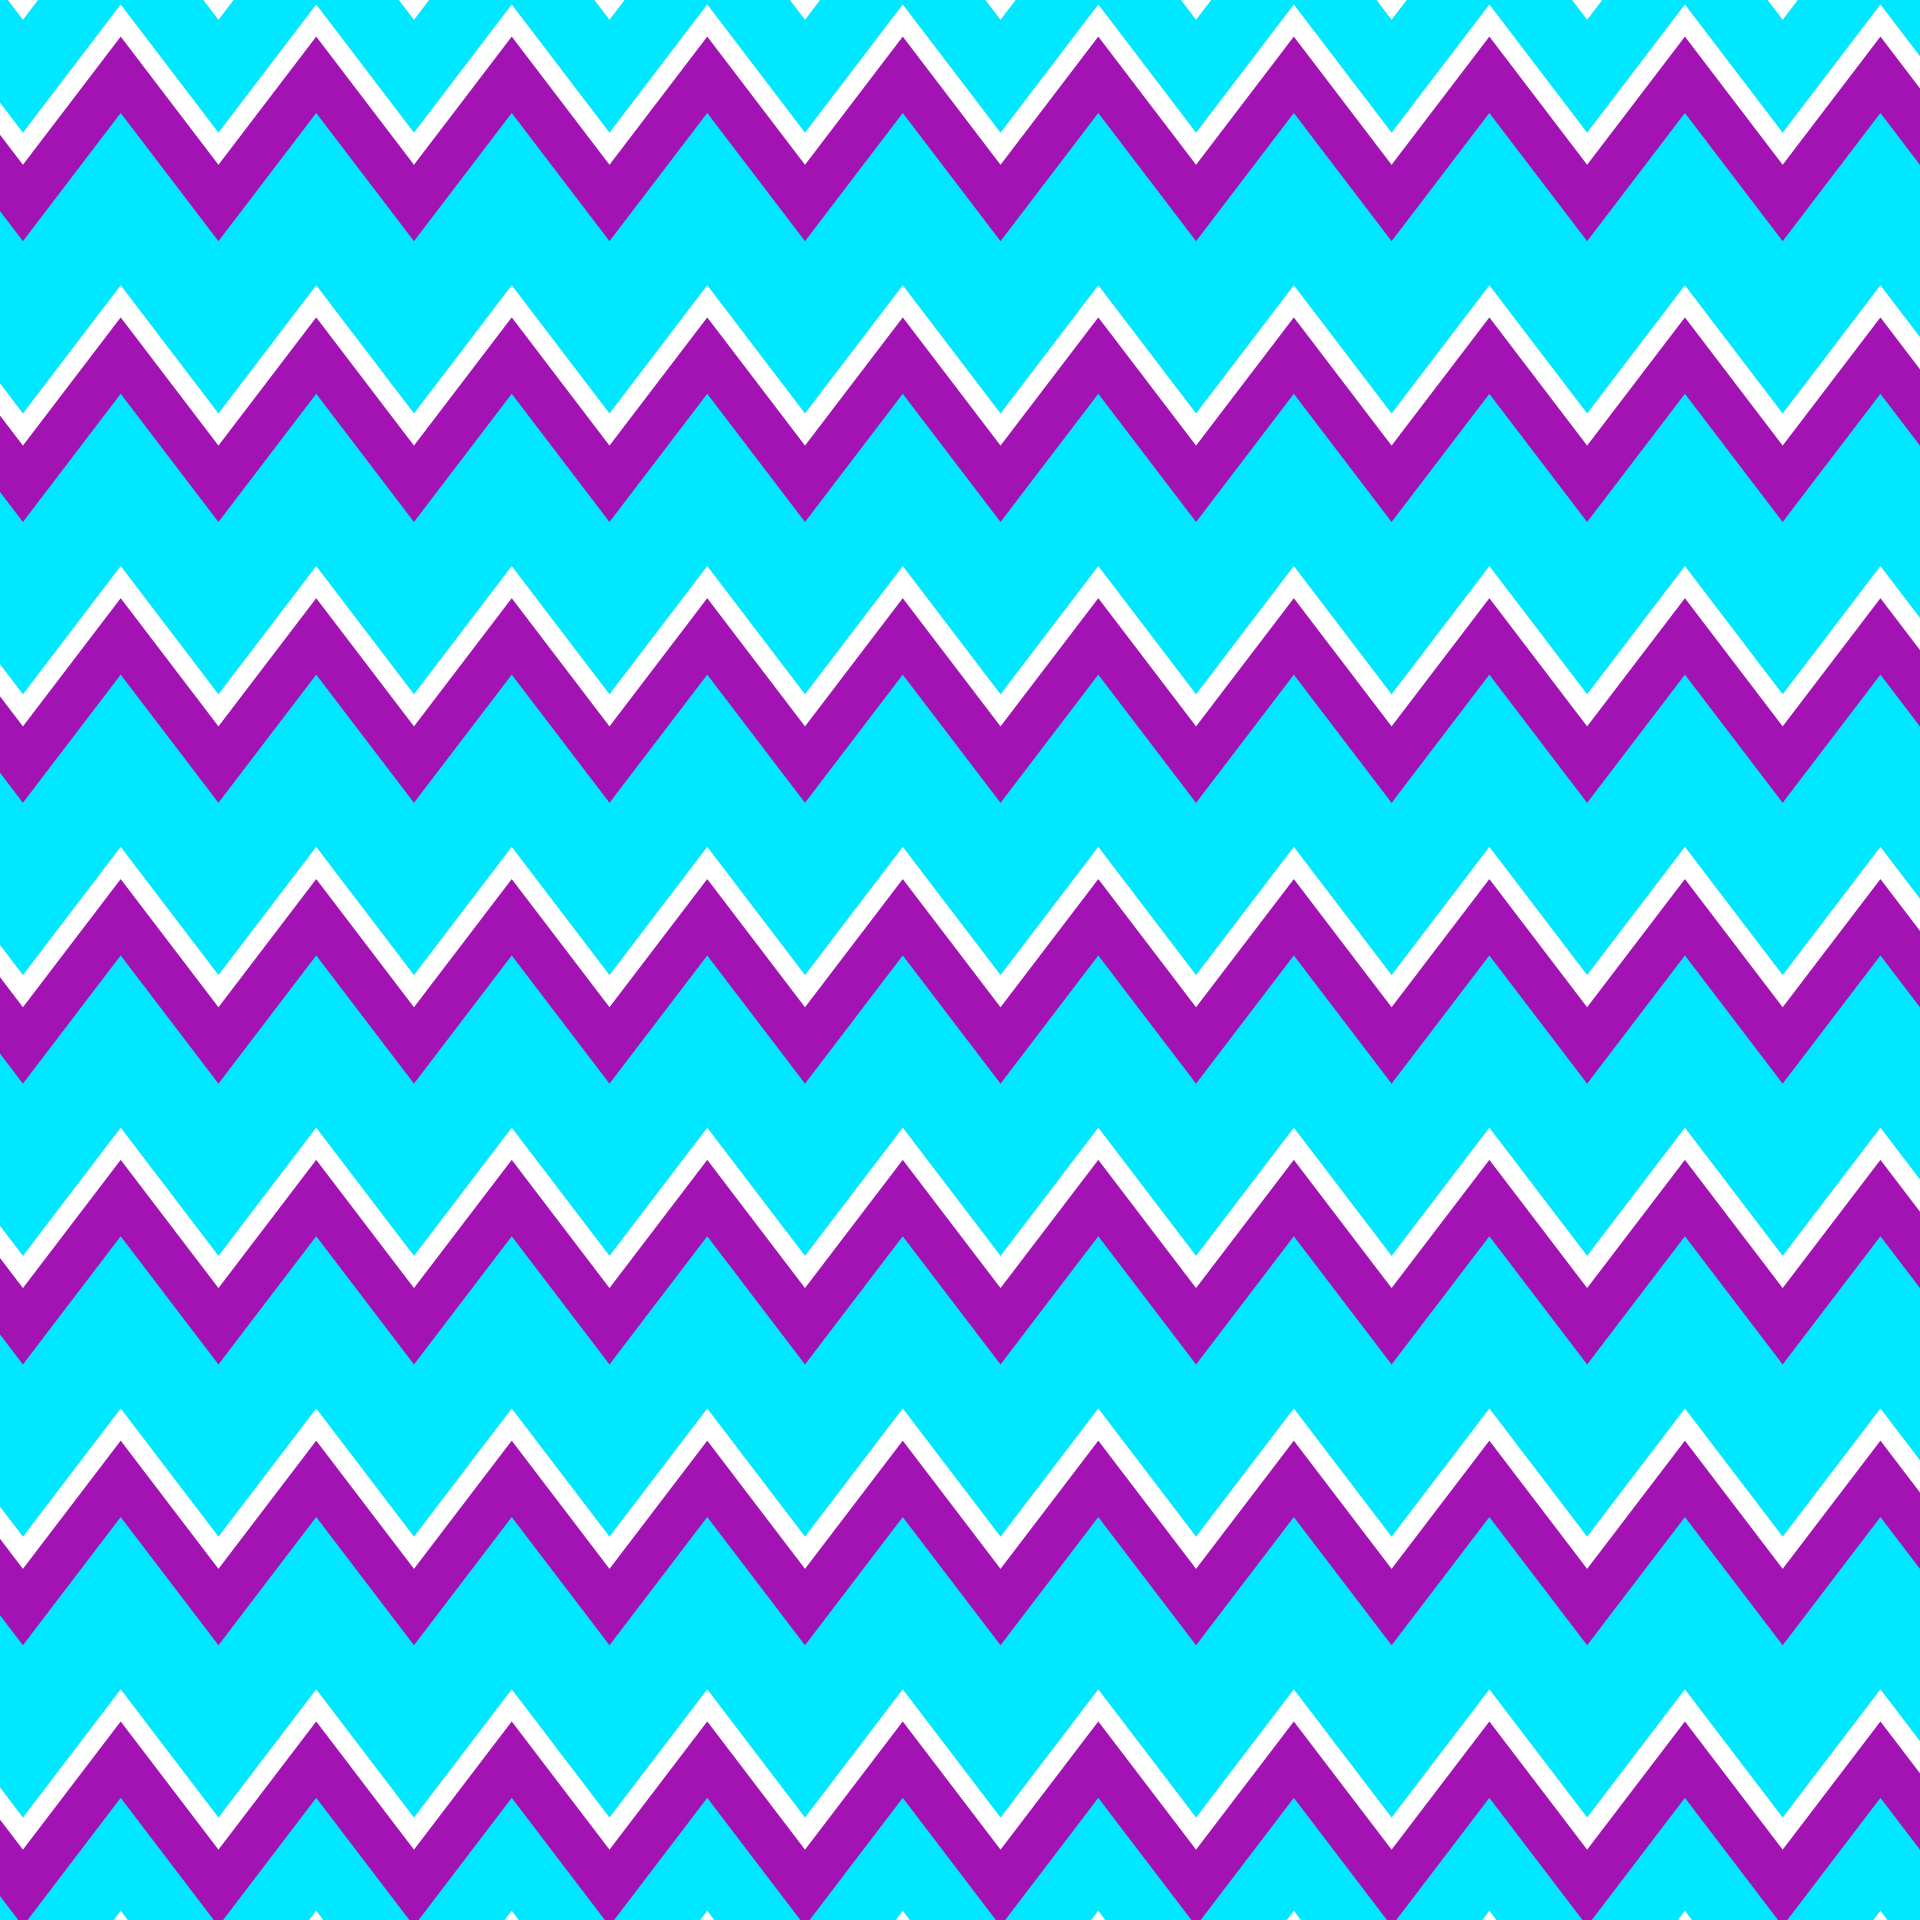 chevron pattern background - HD 1920×1920